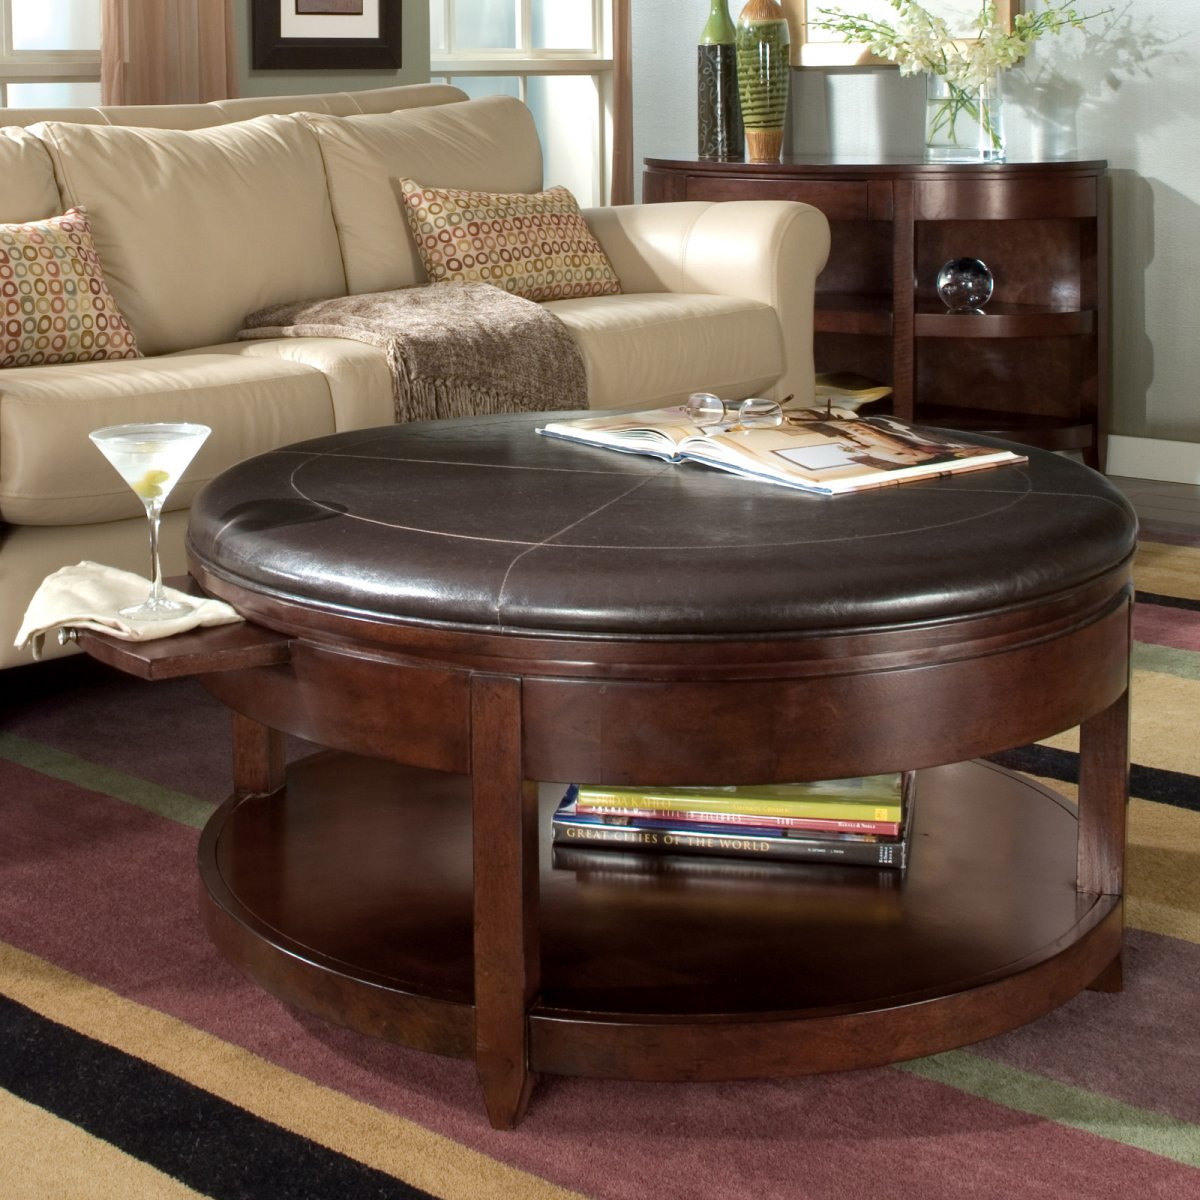 Charmant Brown Round Leather Ottoman Coffee Table Round Leather